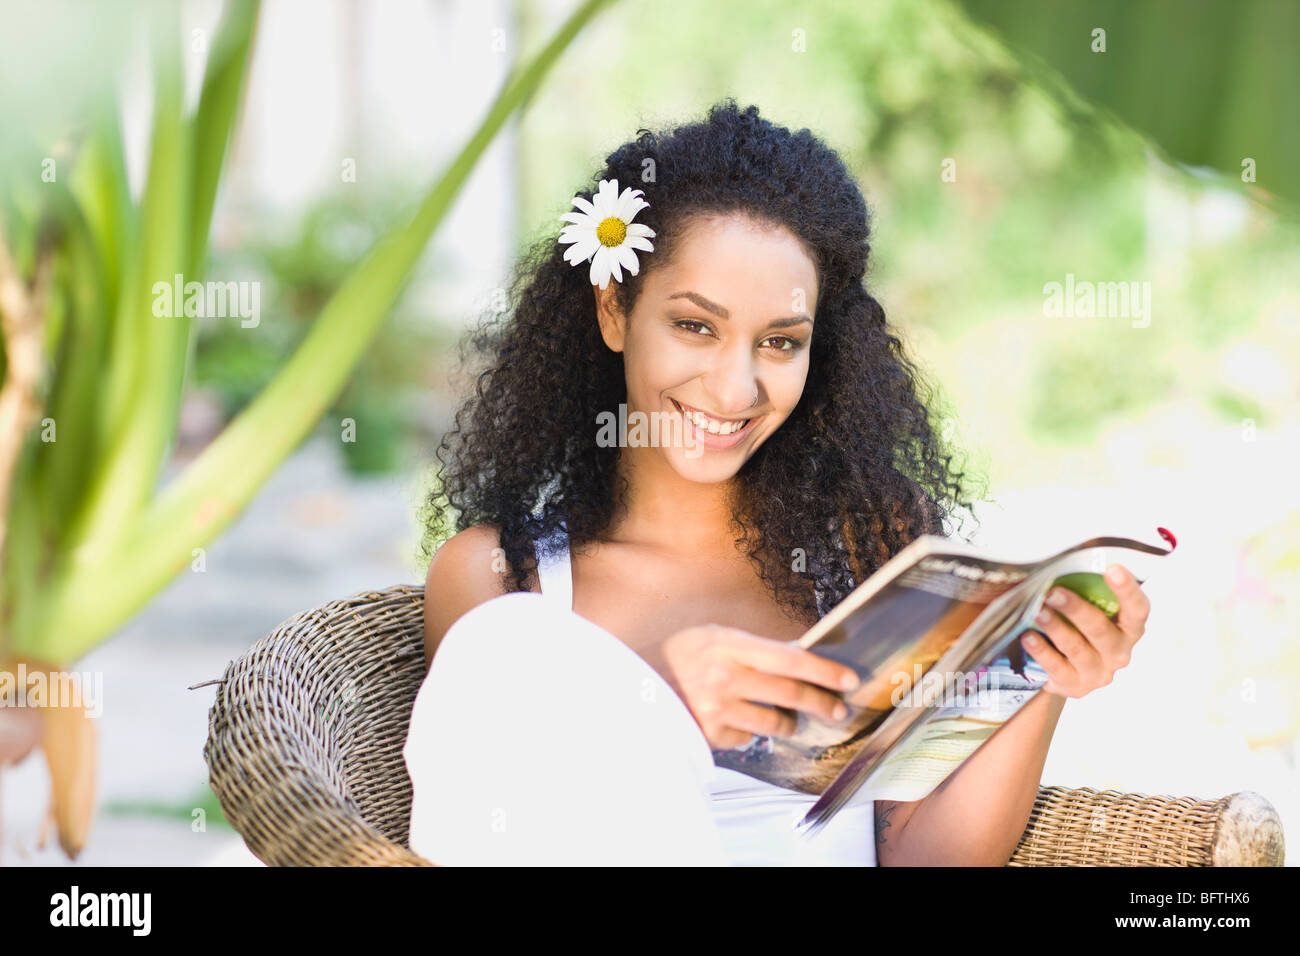 woman sitting in a garden chair - Stock Image